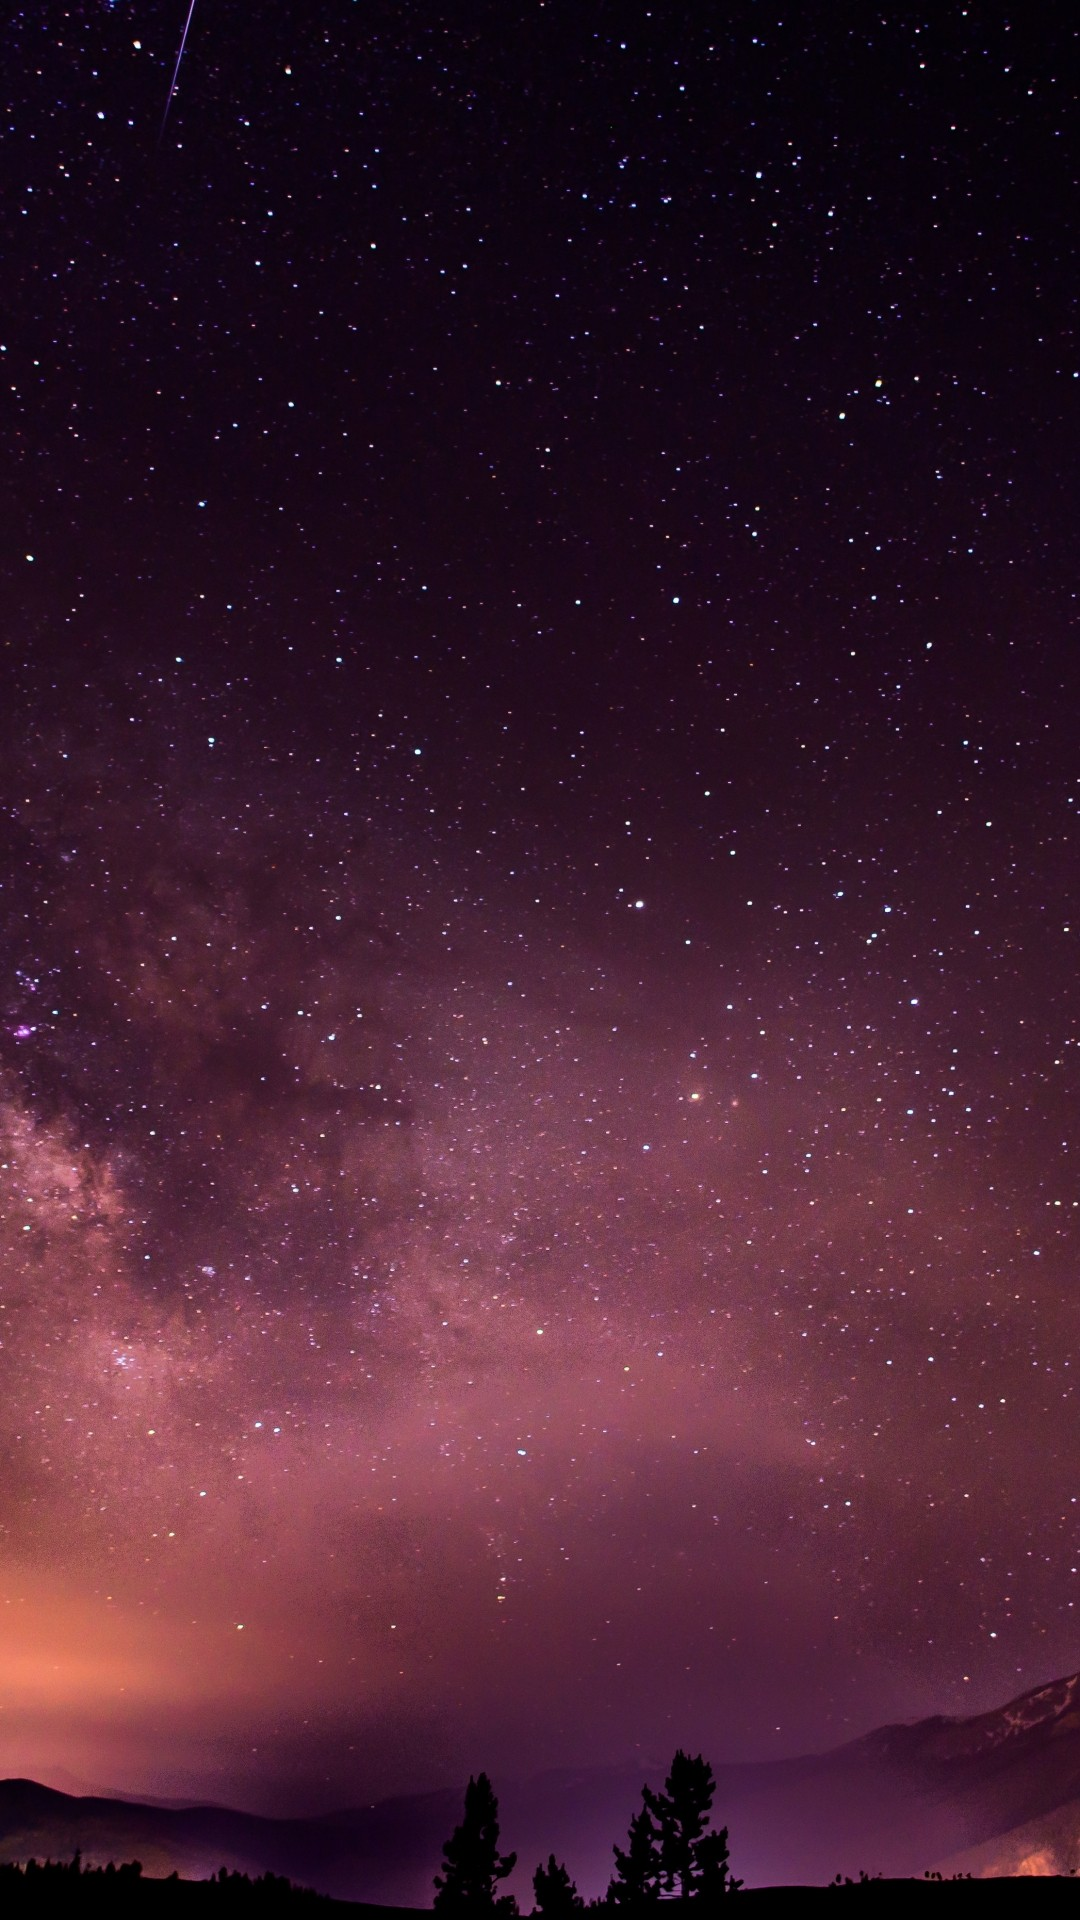 Sky wallpaper for iphone